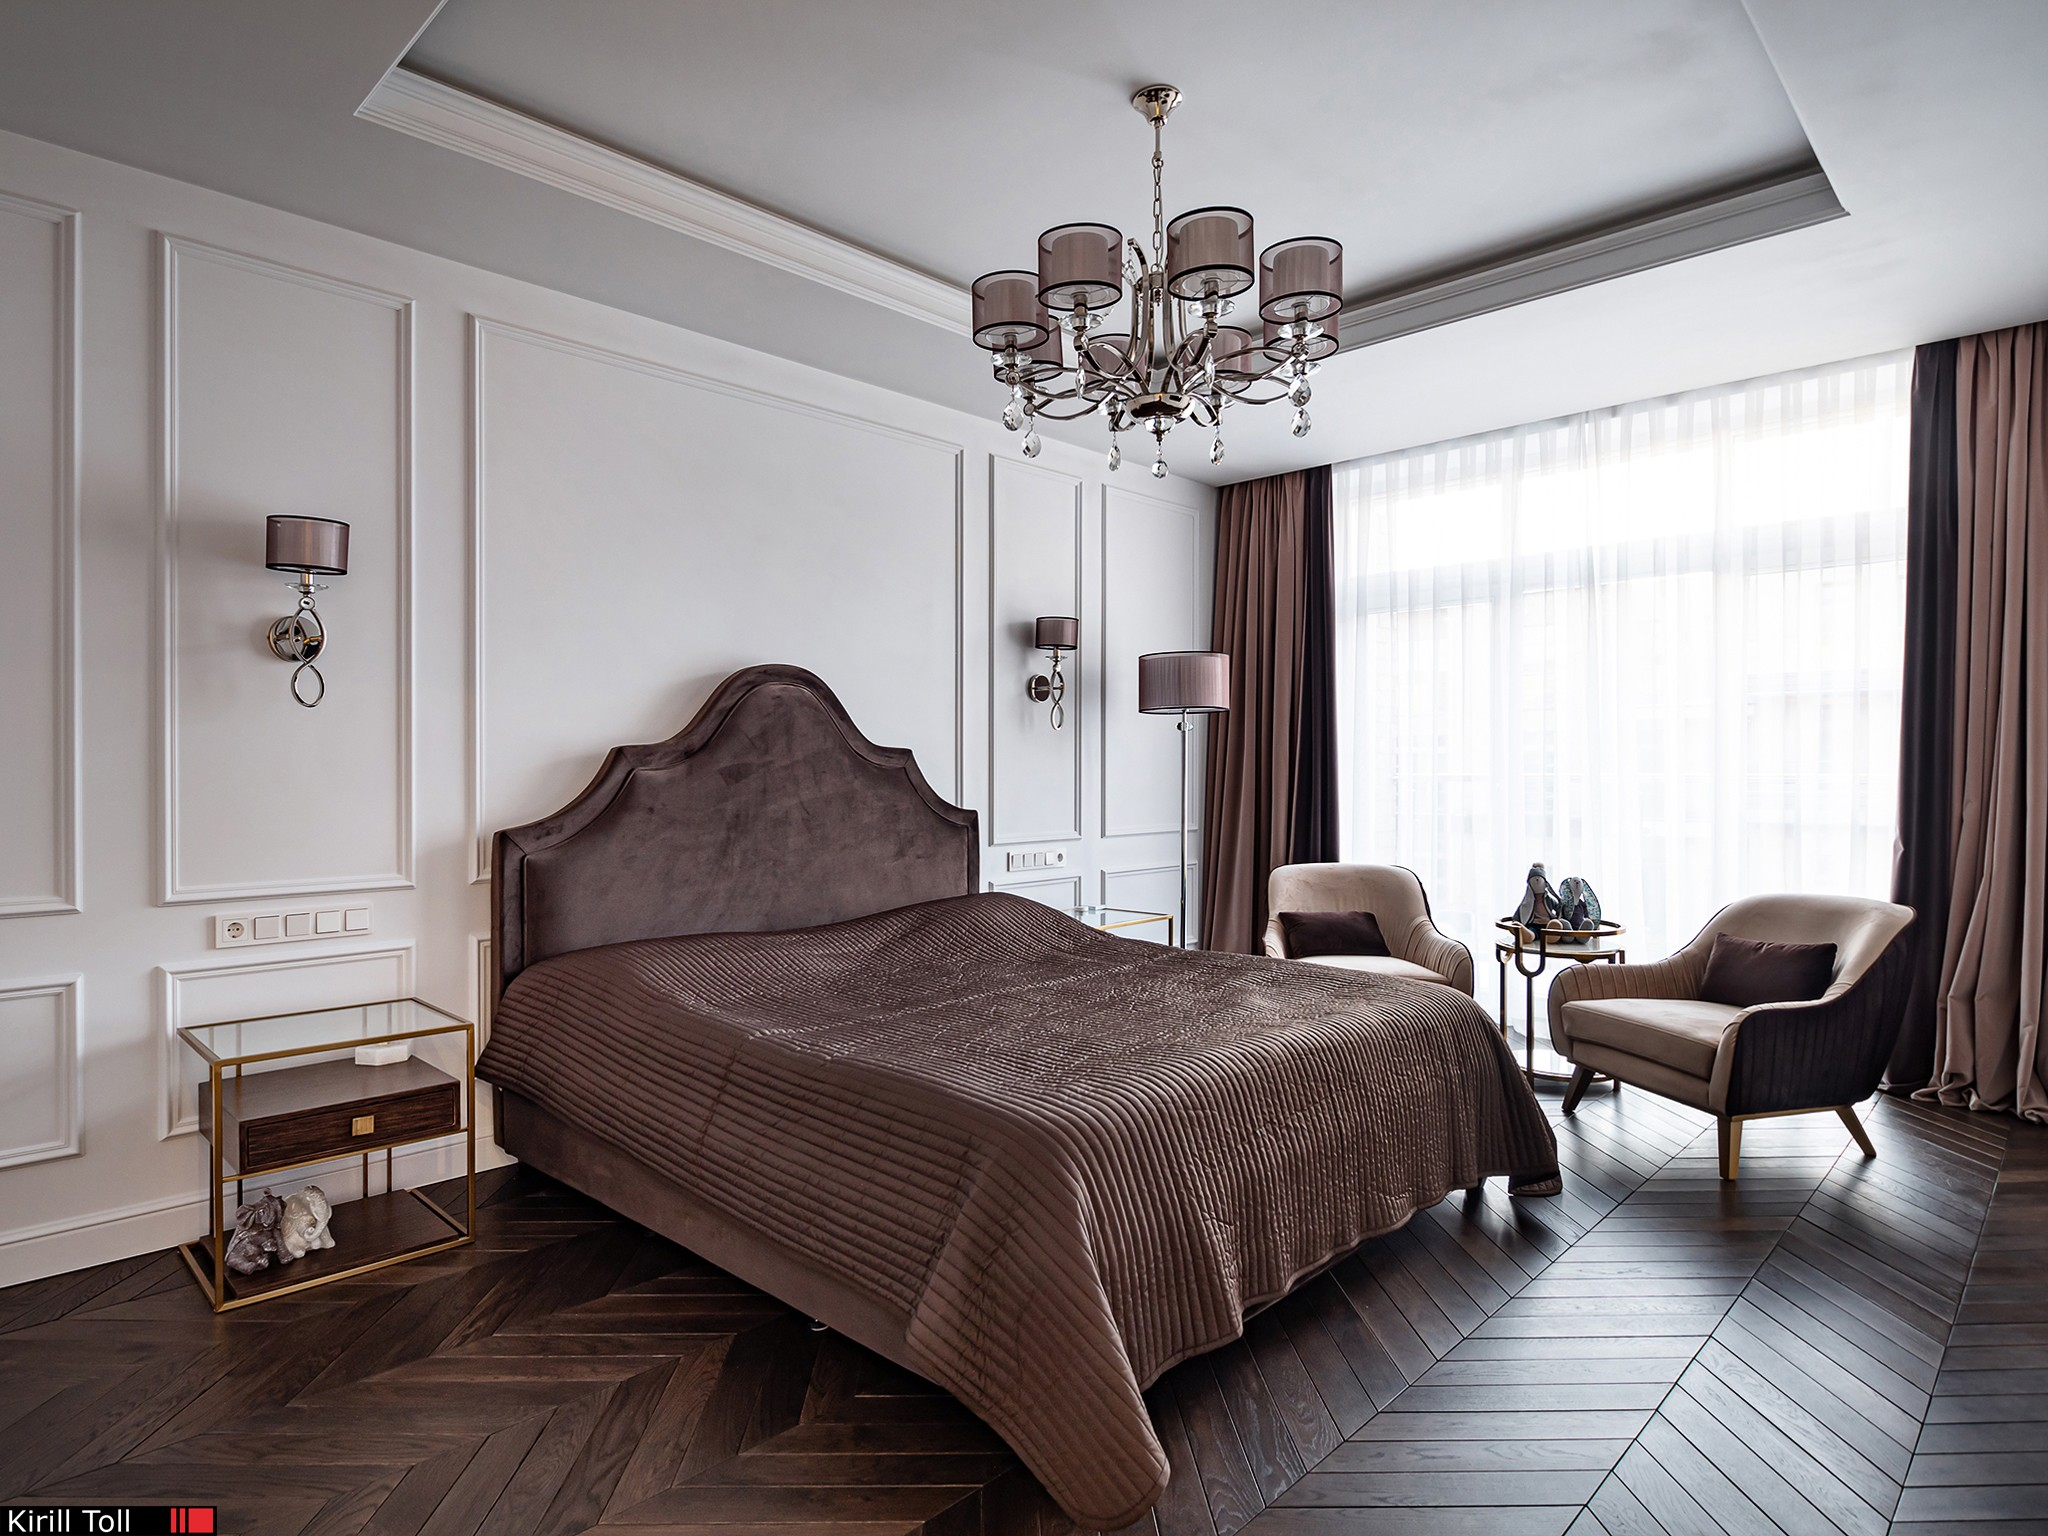 The interior of the bedroom of a country house. Real estate photographer